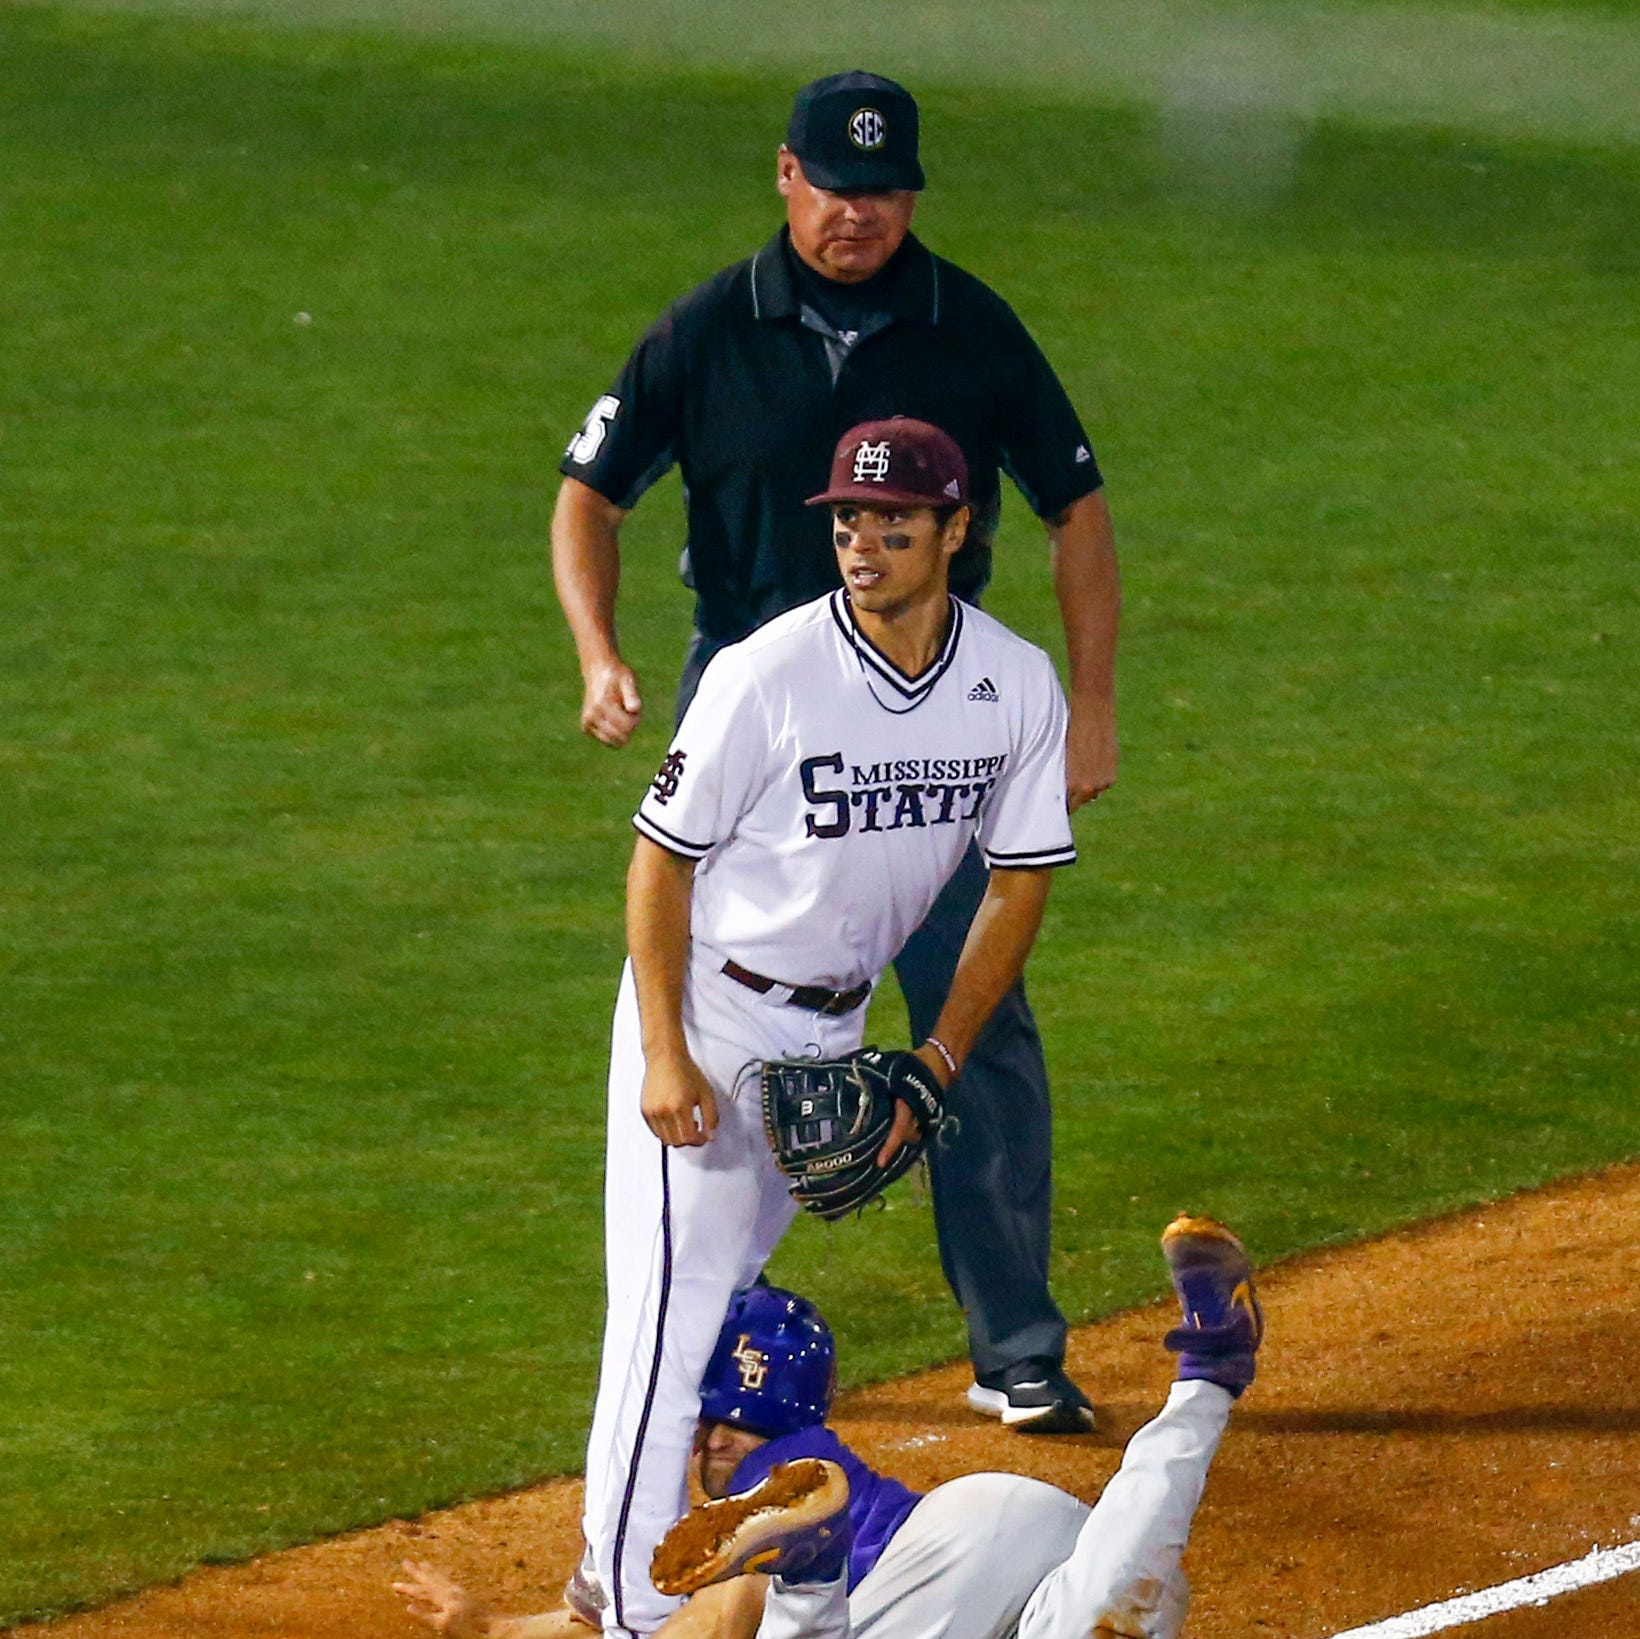 SEC Baseball Tournament 2019: Who are the umpires for LSU vs. Mississippi State?